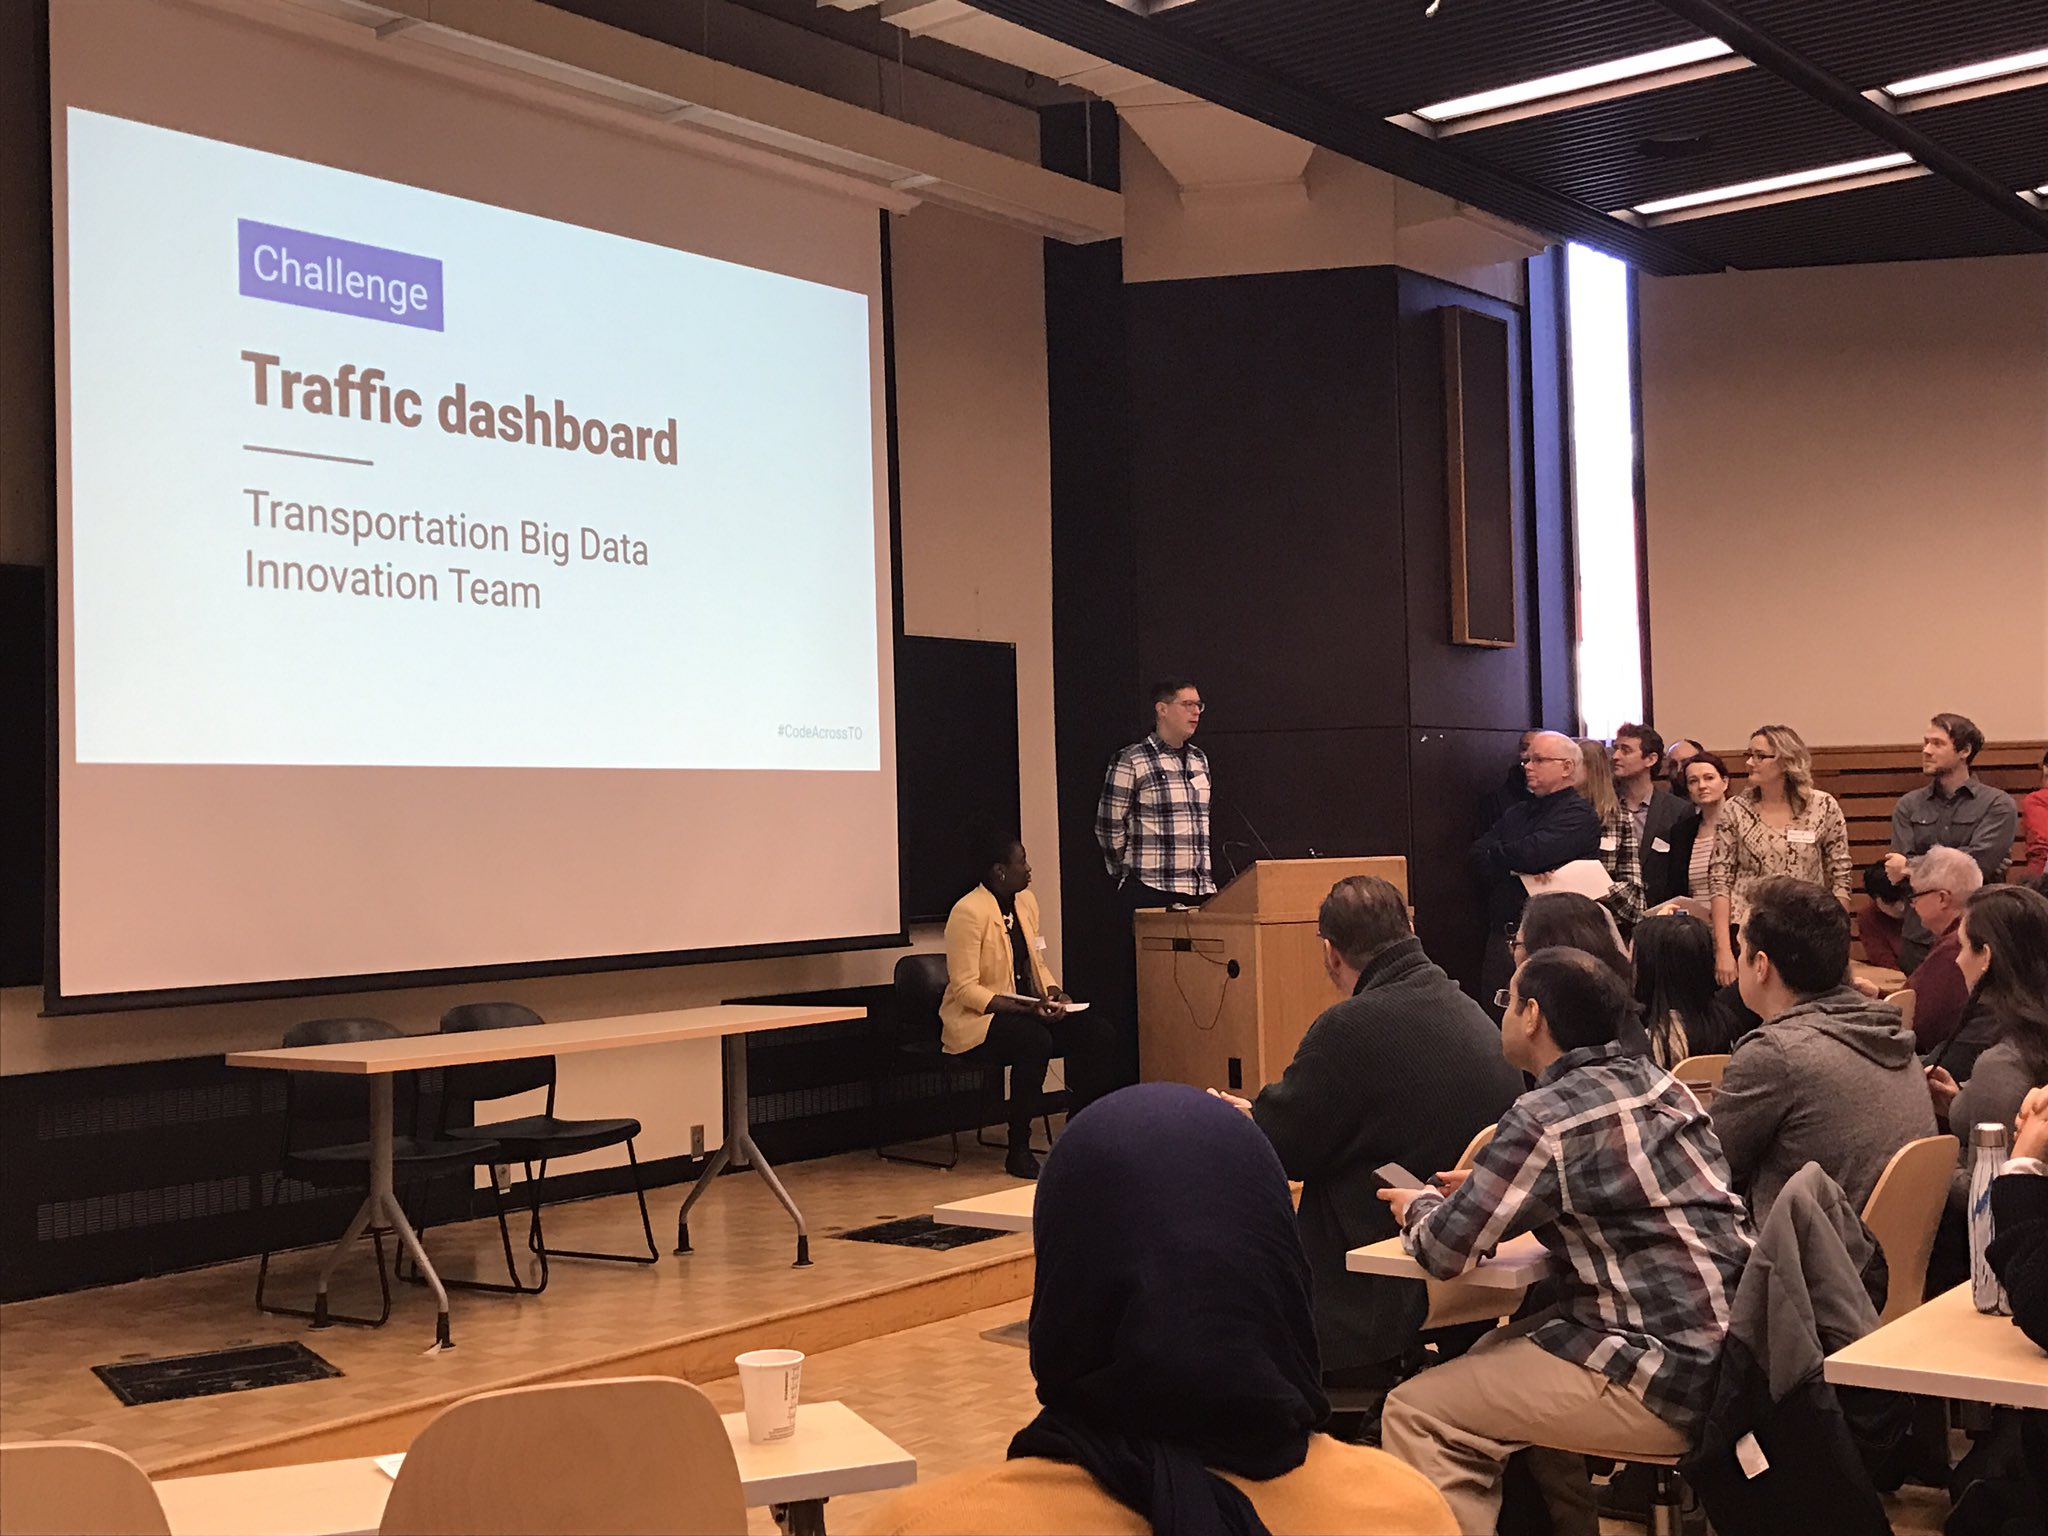 Jesse Coleman pitching the City's Transportation Big Data Team challenge #CodeAcrossTO https://t.co/NAQMC3feCL